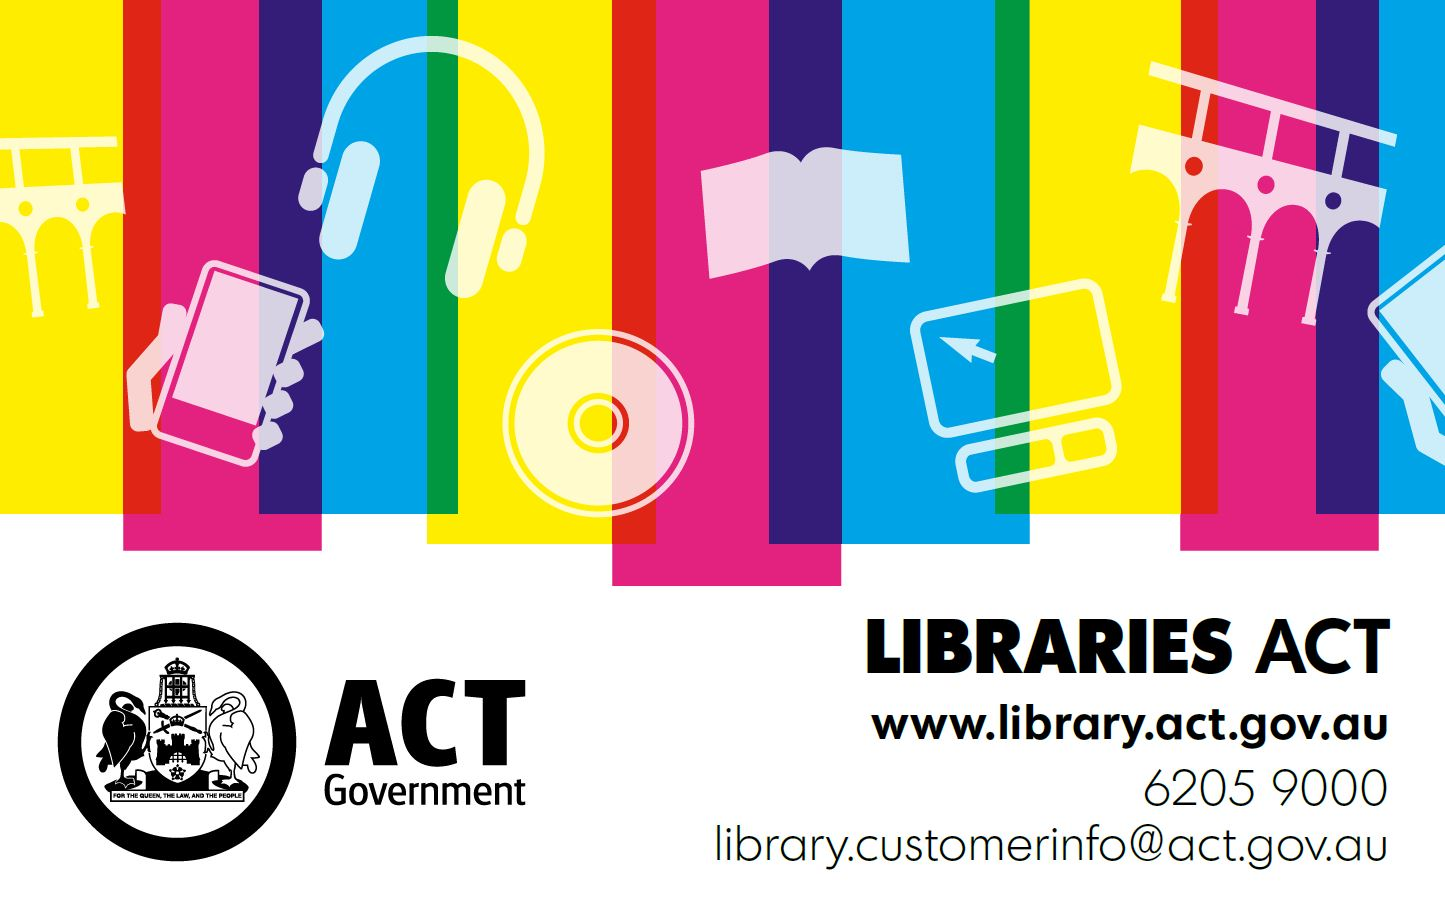 ACT Govt library logo